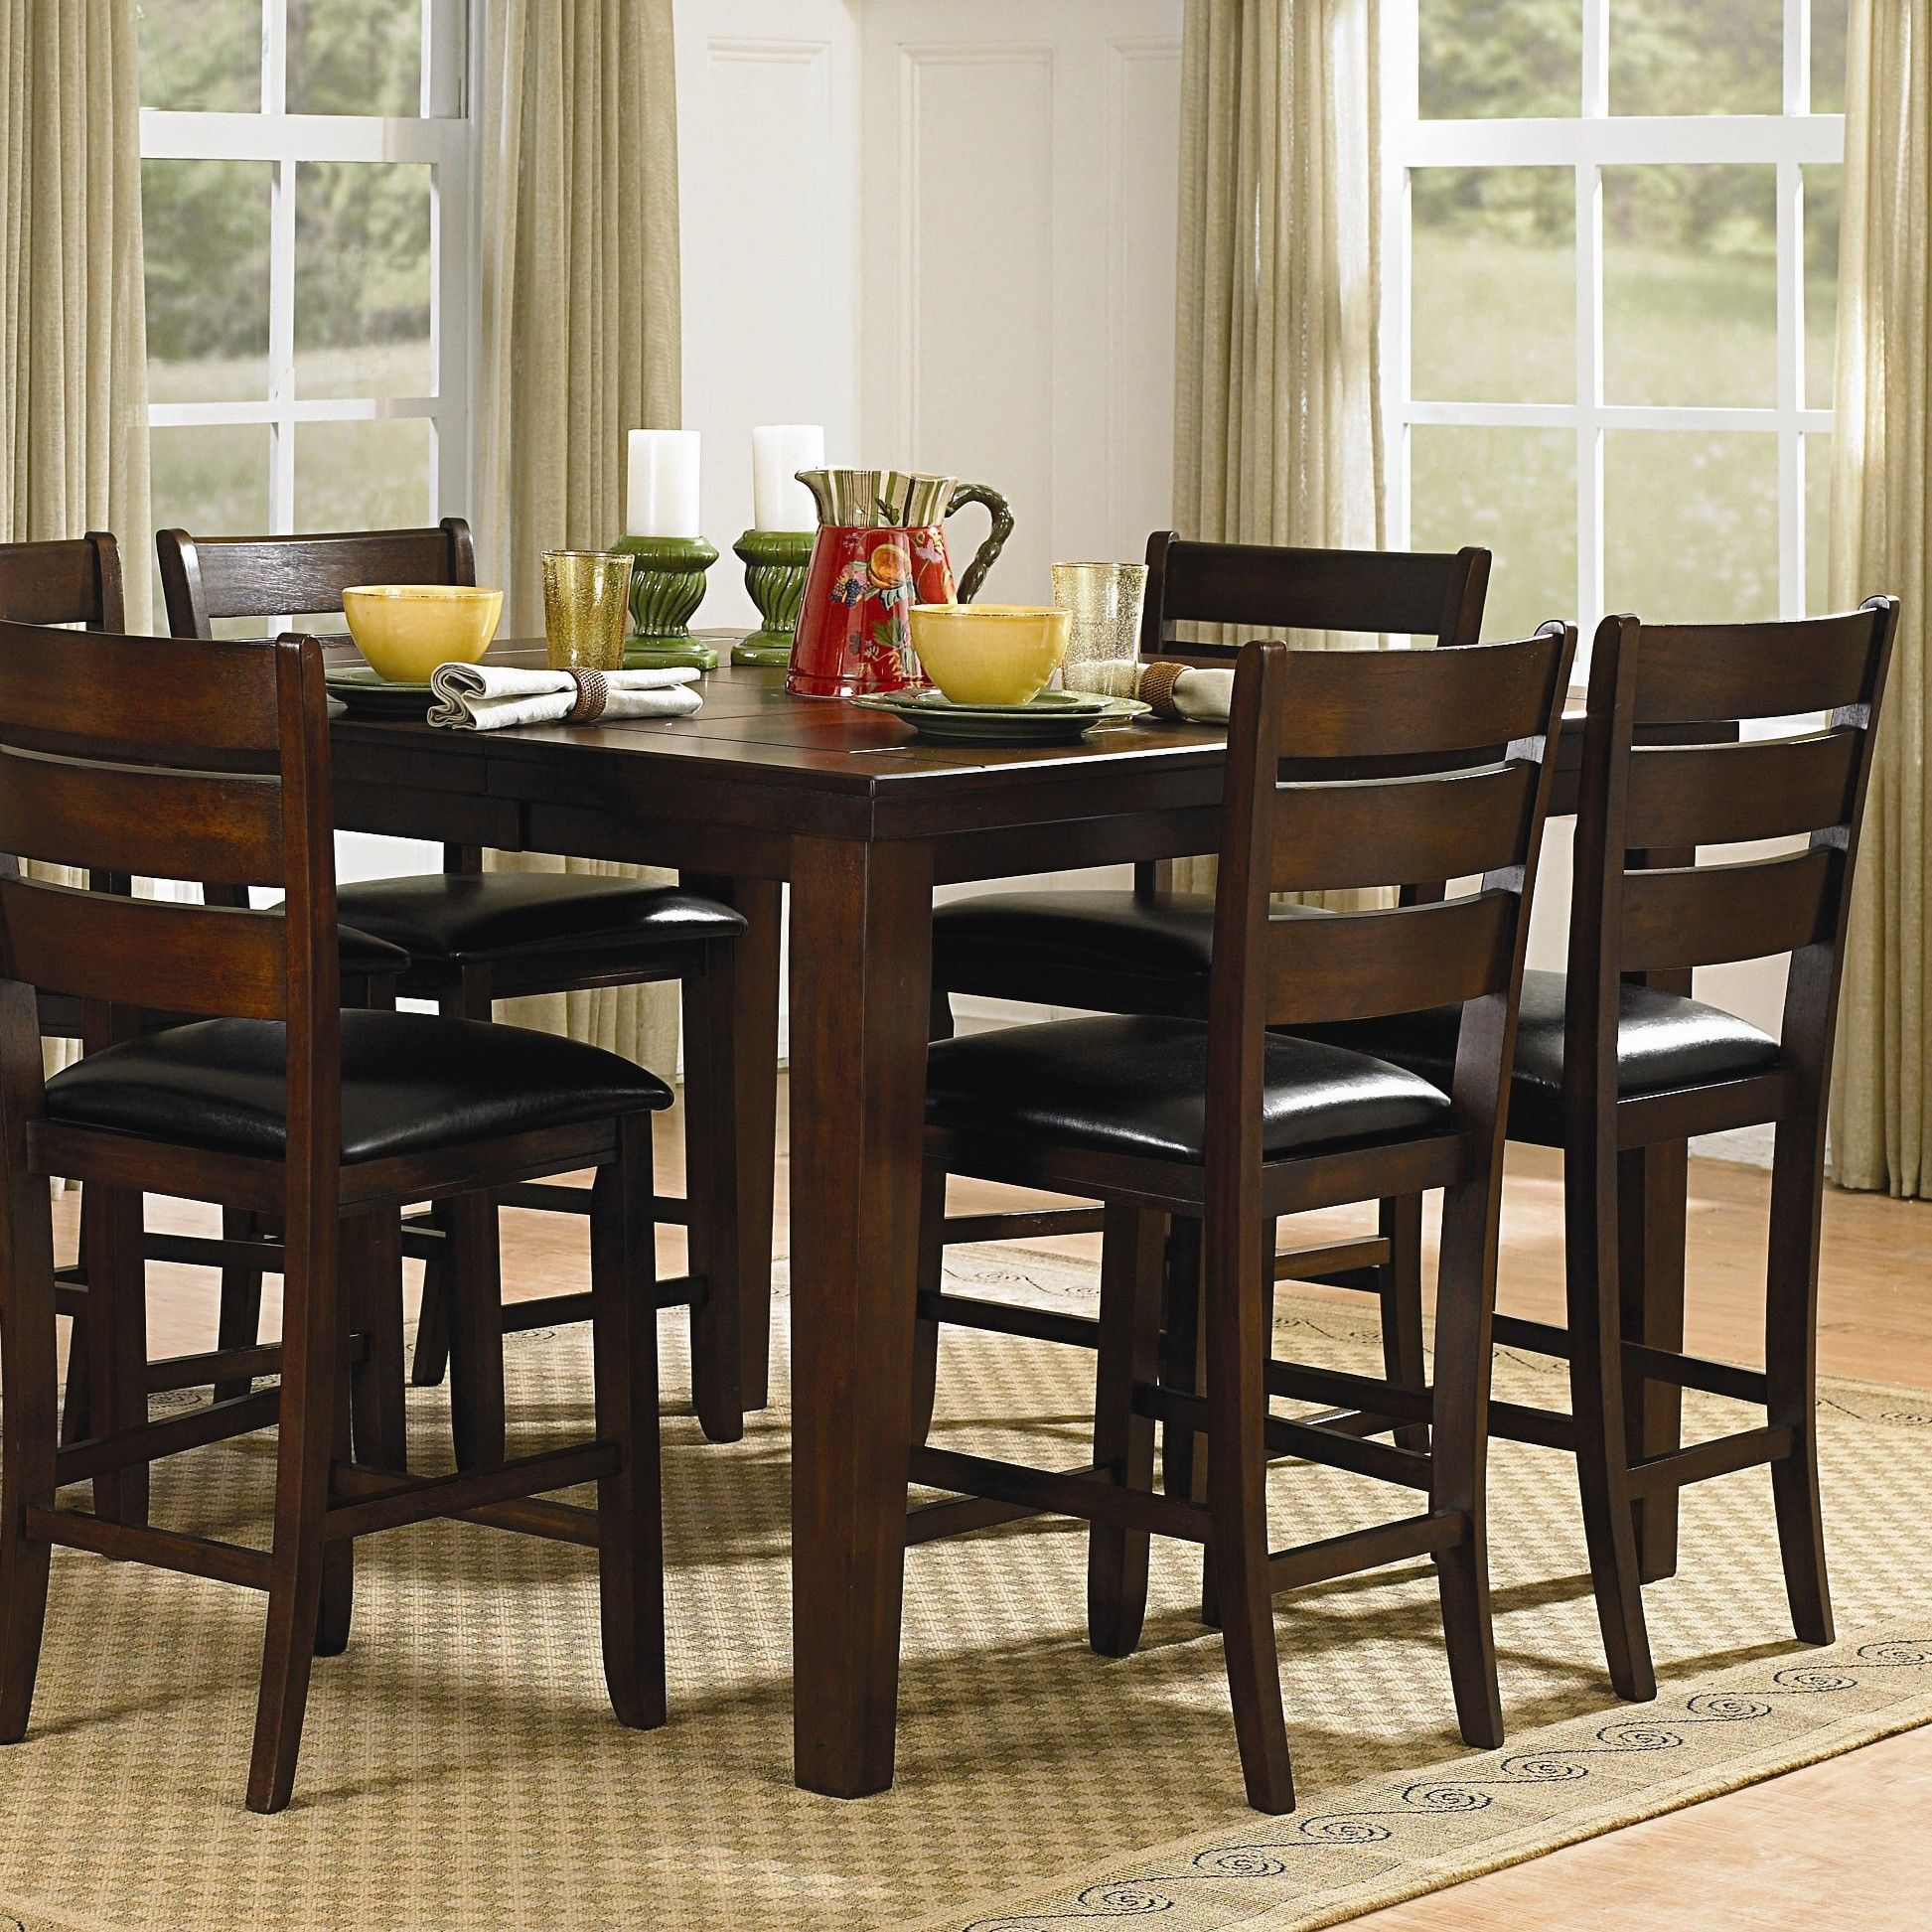 Ameillia Sq Counter Height Table | Counter height dining ...